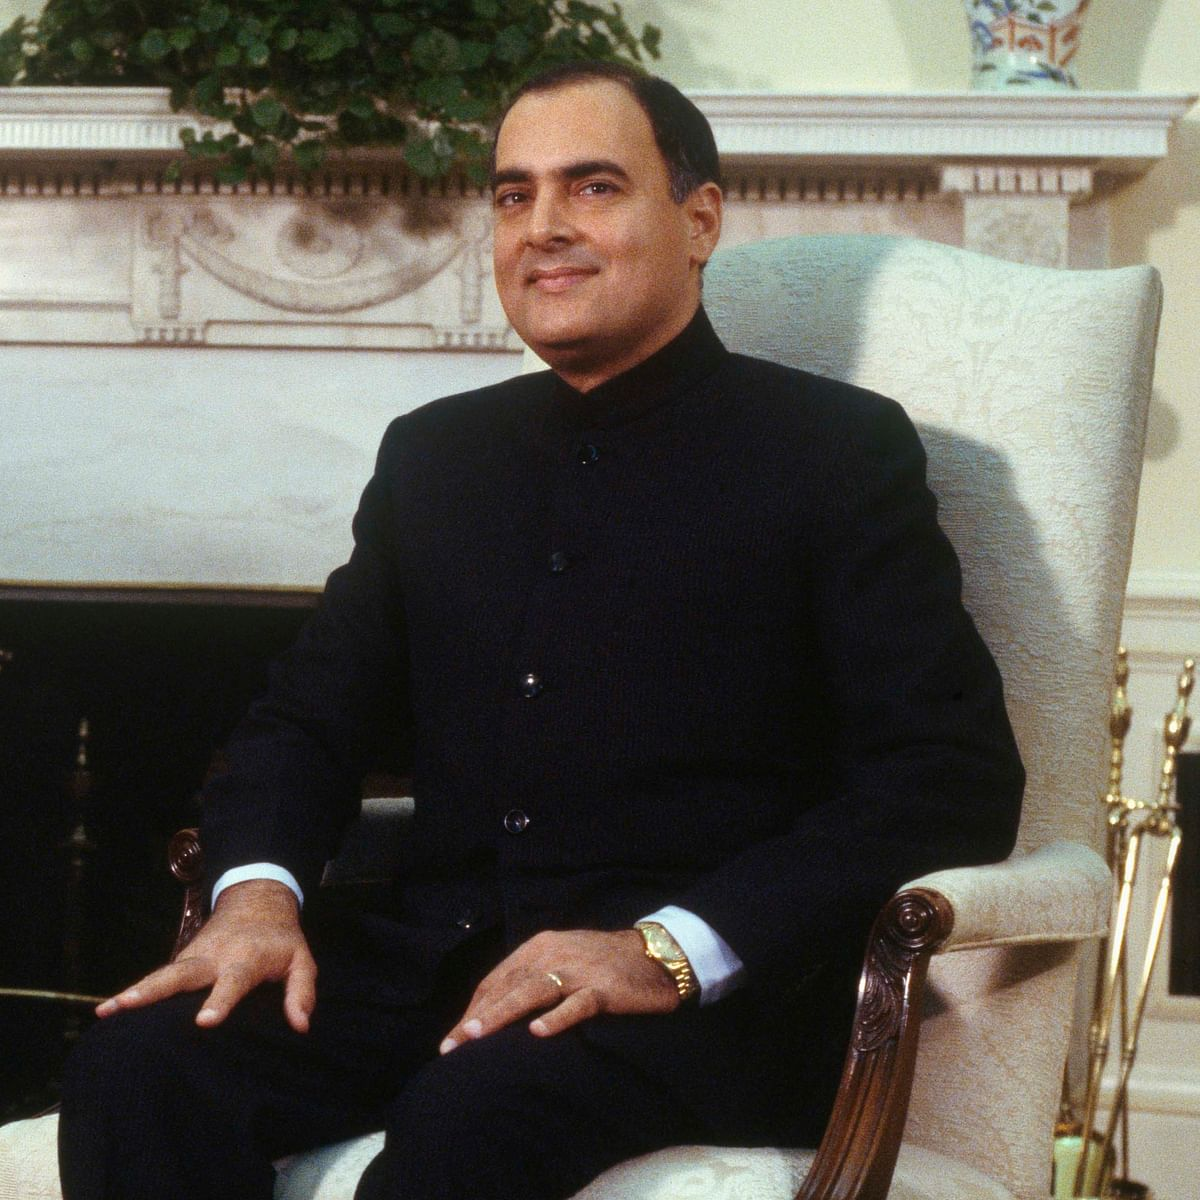 Rajiv Gandhi, the youngest Prime Minister of India, gave democracy at the grassroots a whole new meaning by ushering in Panchayati Raj in the country.